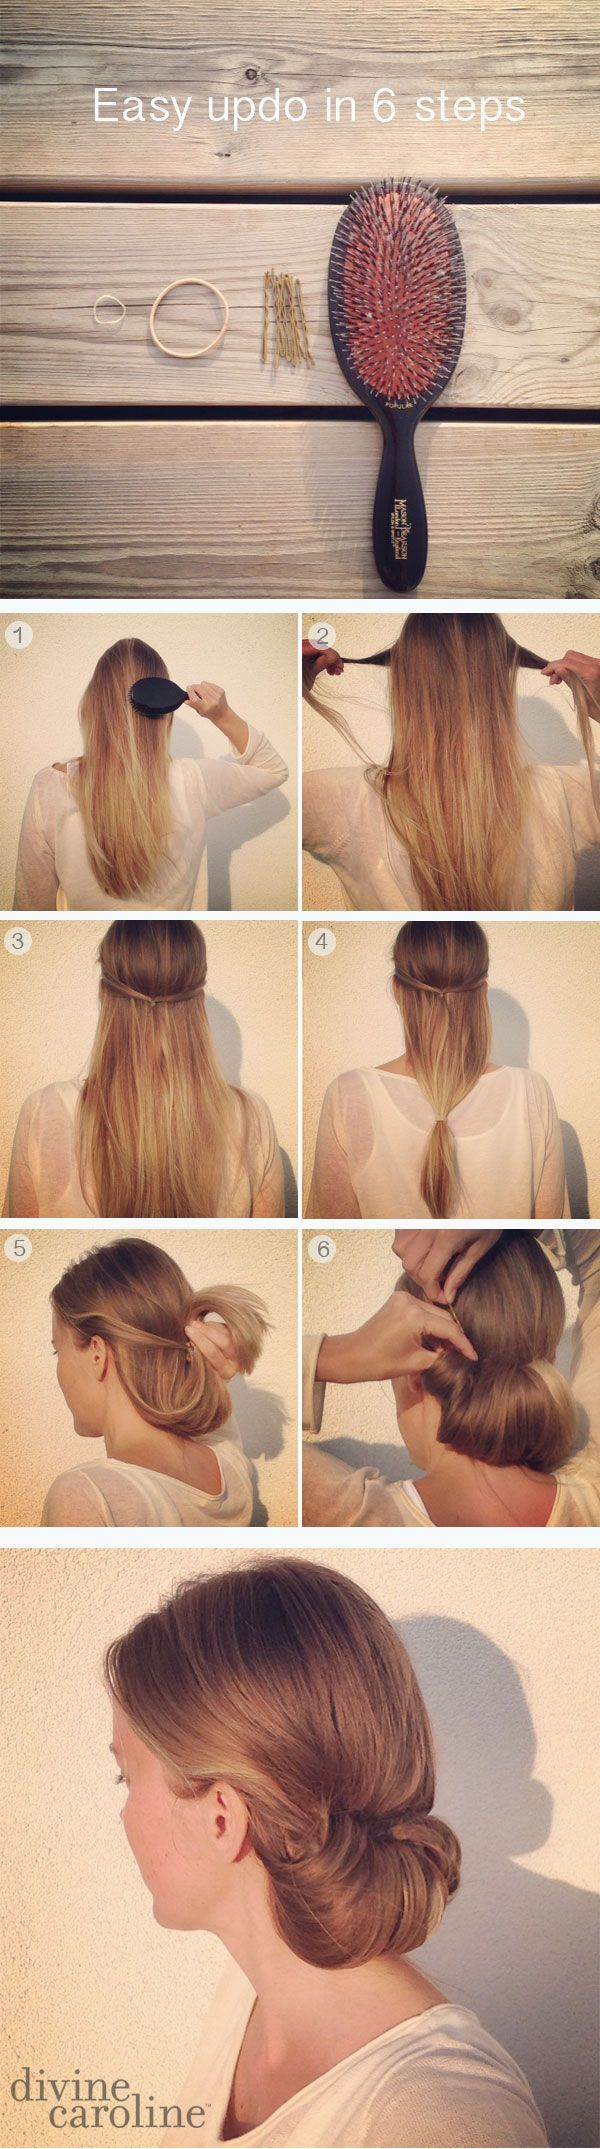 Pin On Beauty Hair